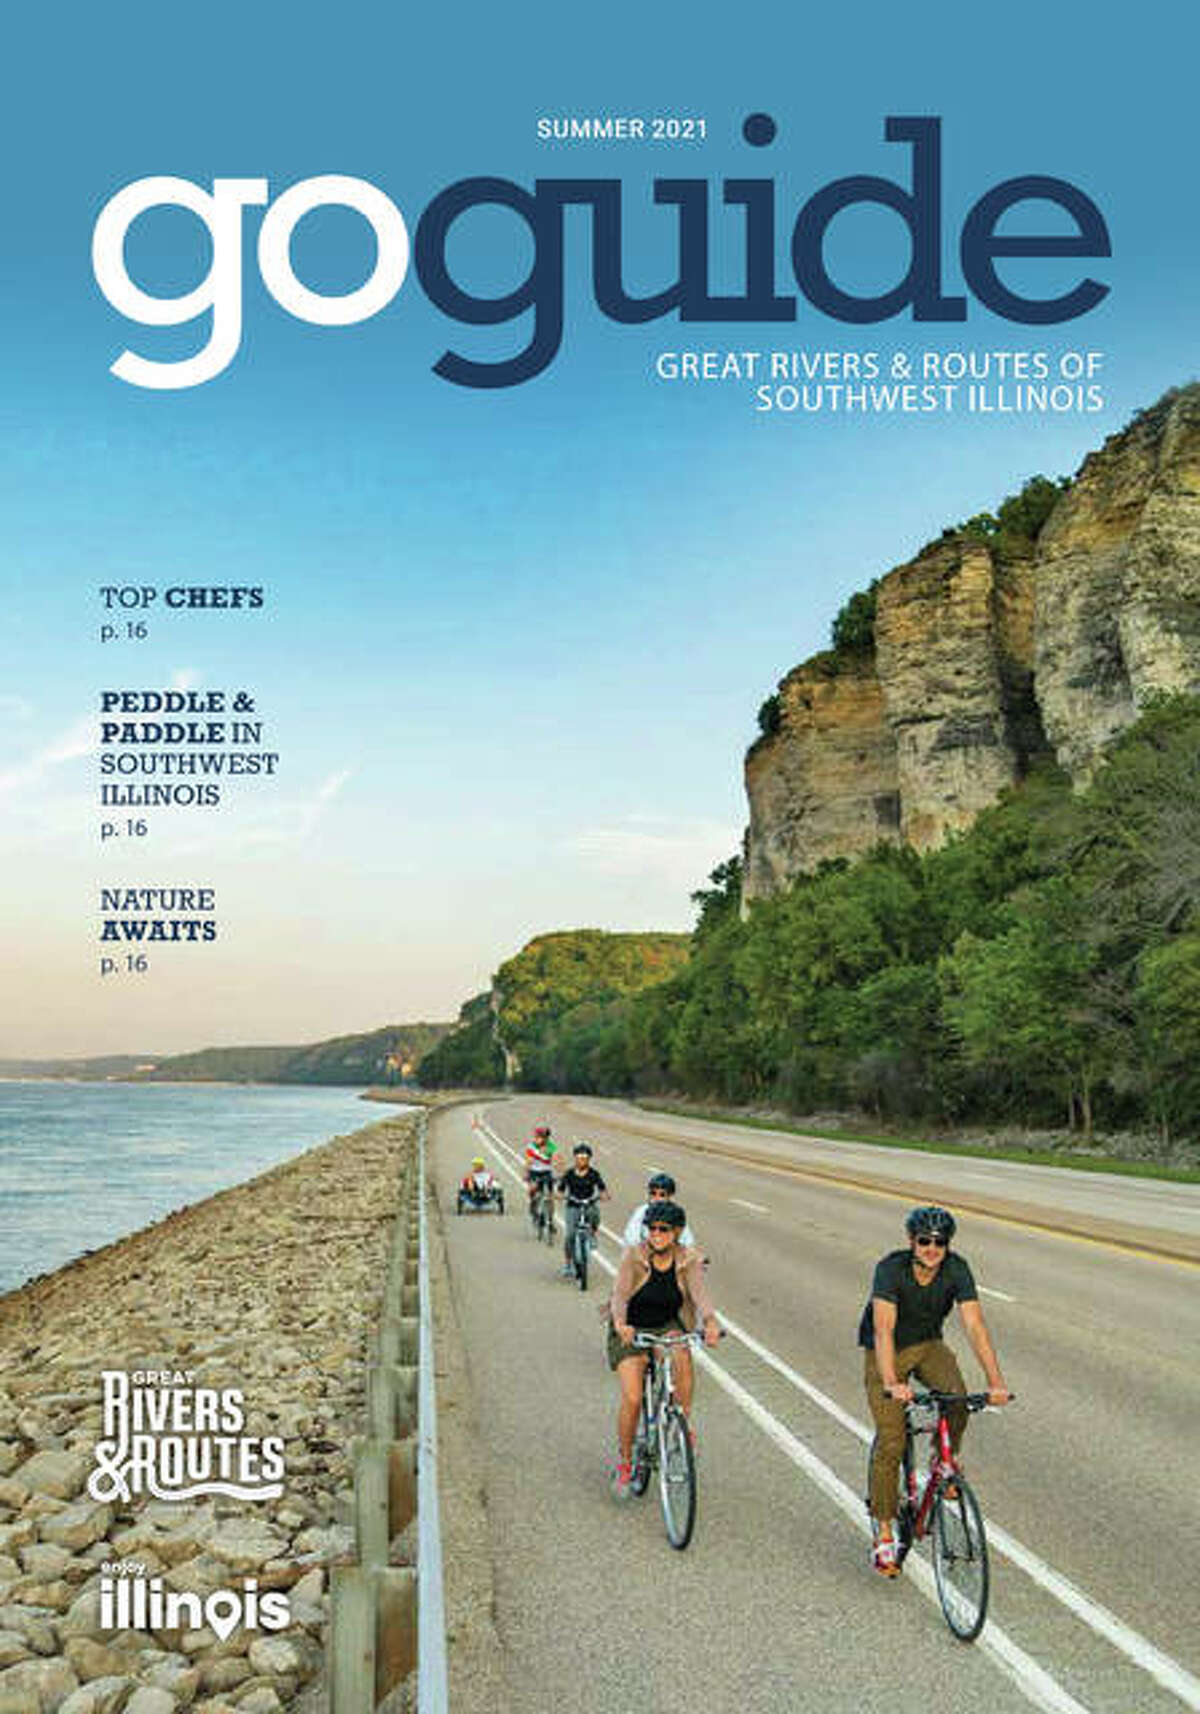 The the Great Rivers & Routes Tourism Bureau's new Go Guide magazine focusing on travel experiences in the six-county region is now available online and area businesses.